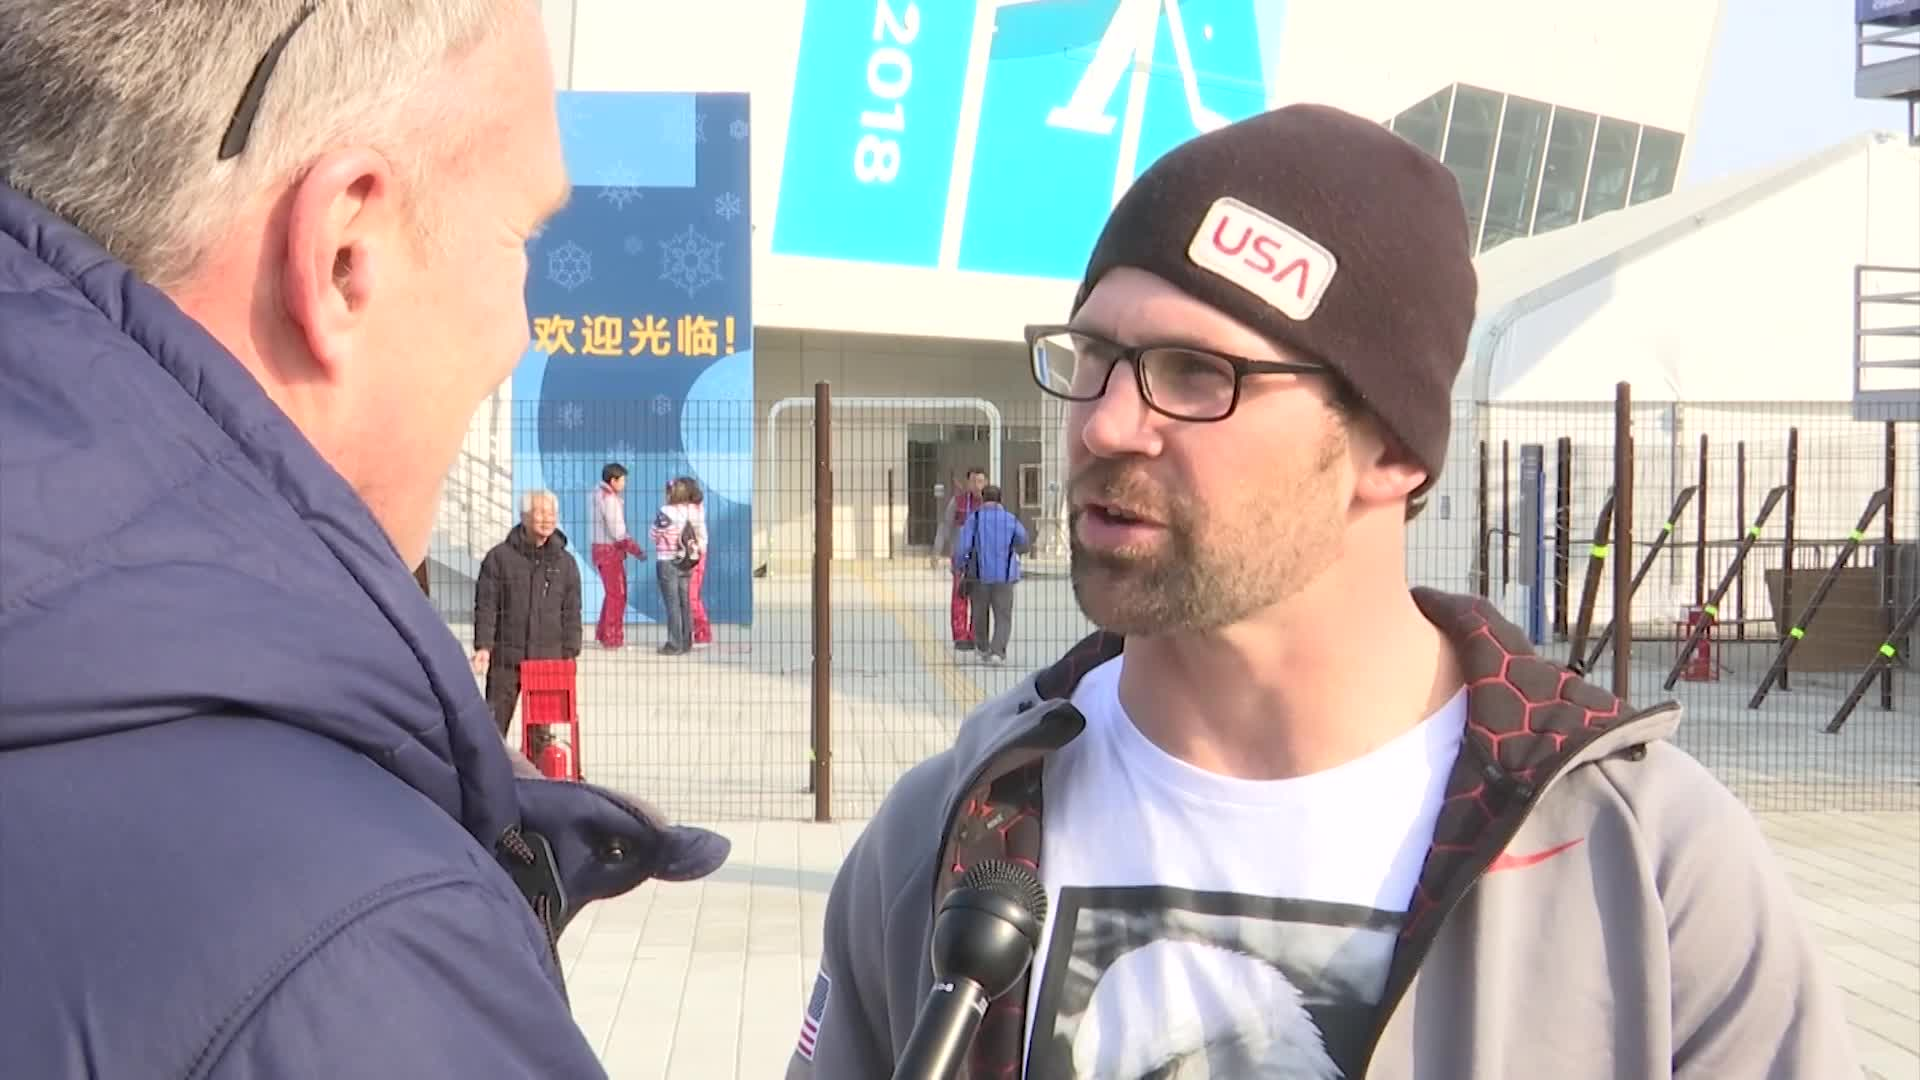 Team USA_s Nick Baumgartner may have just missed the podium in snowboard cross, but he says sharing the experience with his son changed everyth_702048